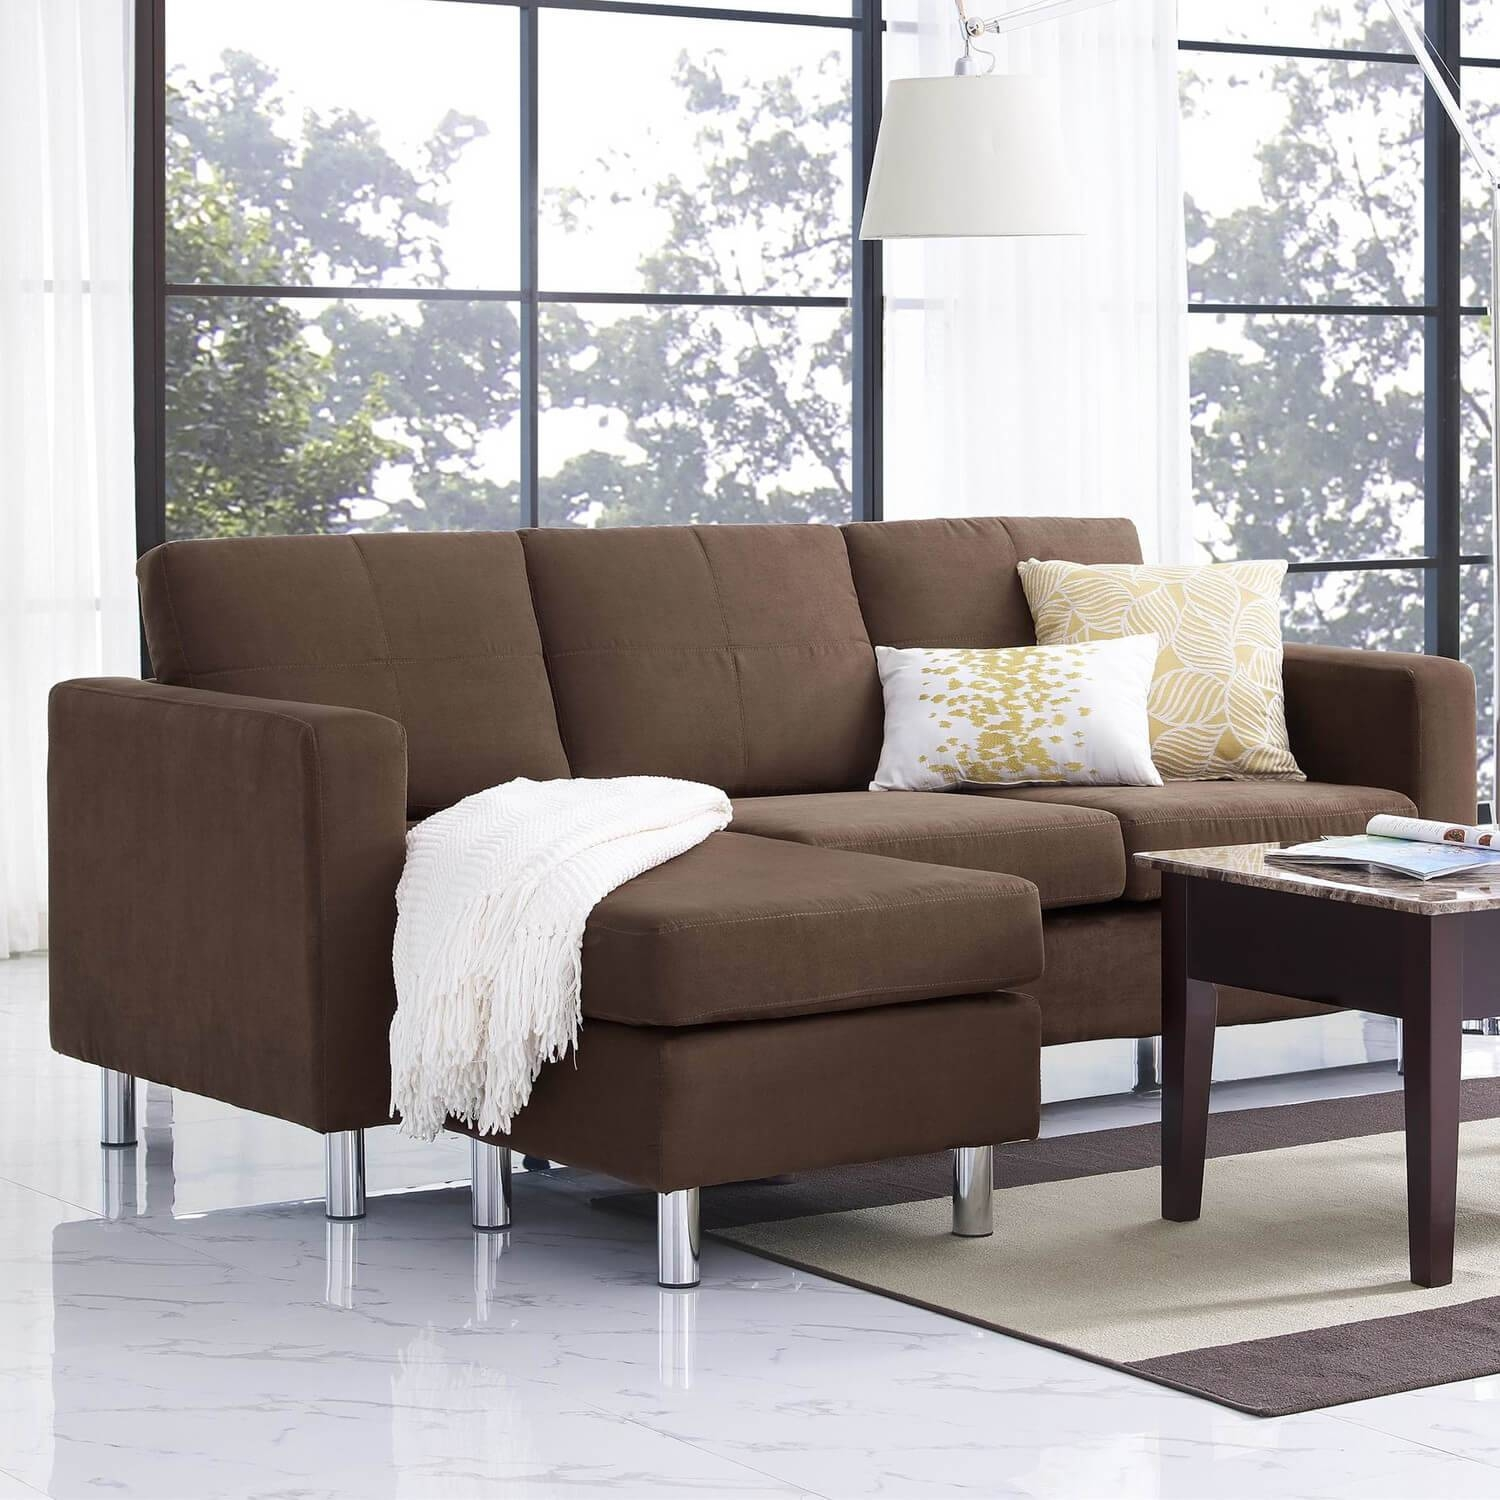 Furniture & Sofa: Perfect Small Spaces Configurable Sectional Sofa Intended For Sectional Sofas For Small Spaces With Recliners (View 7 of 30)